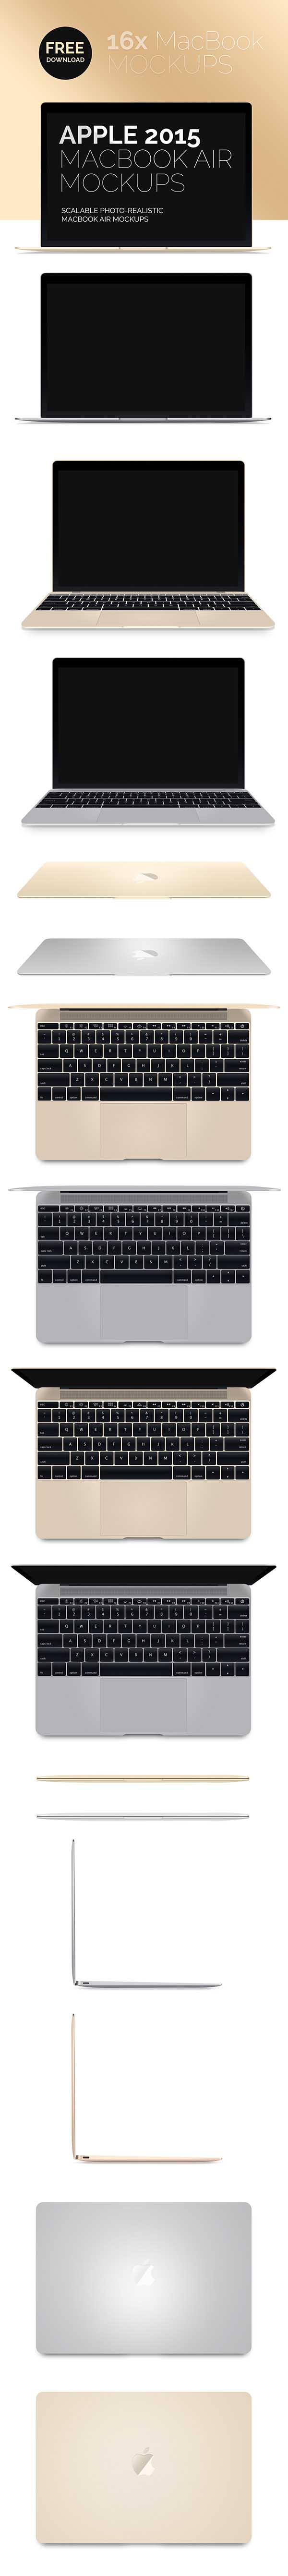 Free Latest New MacBook 2015 PSD MockUps